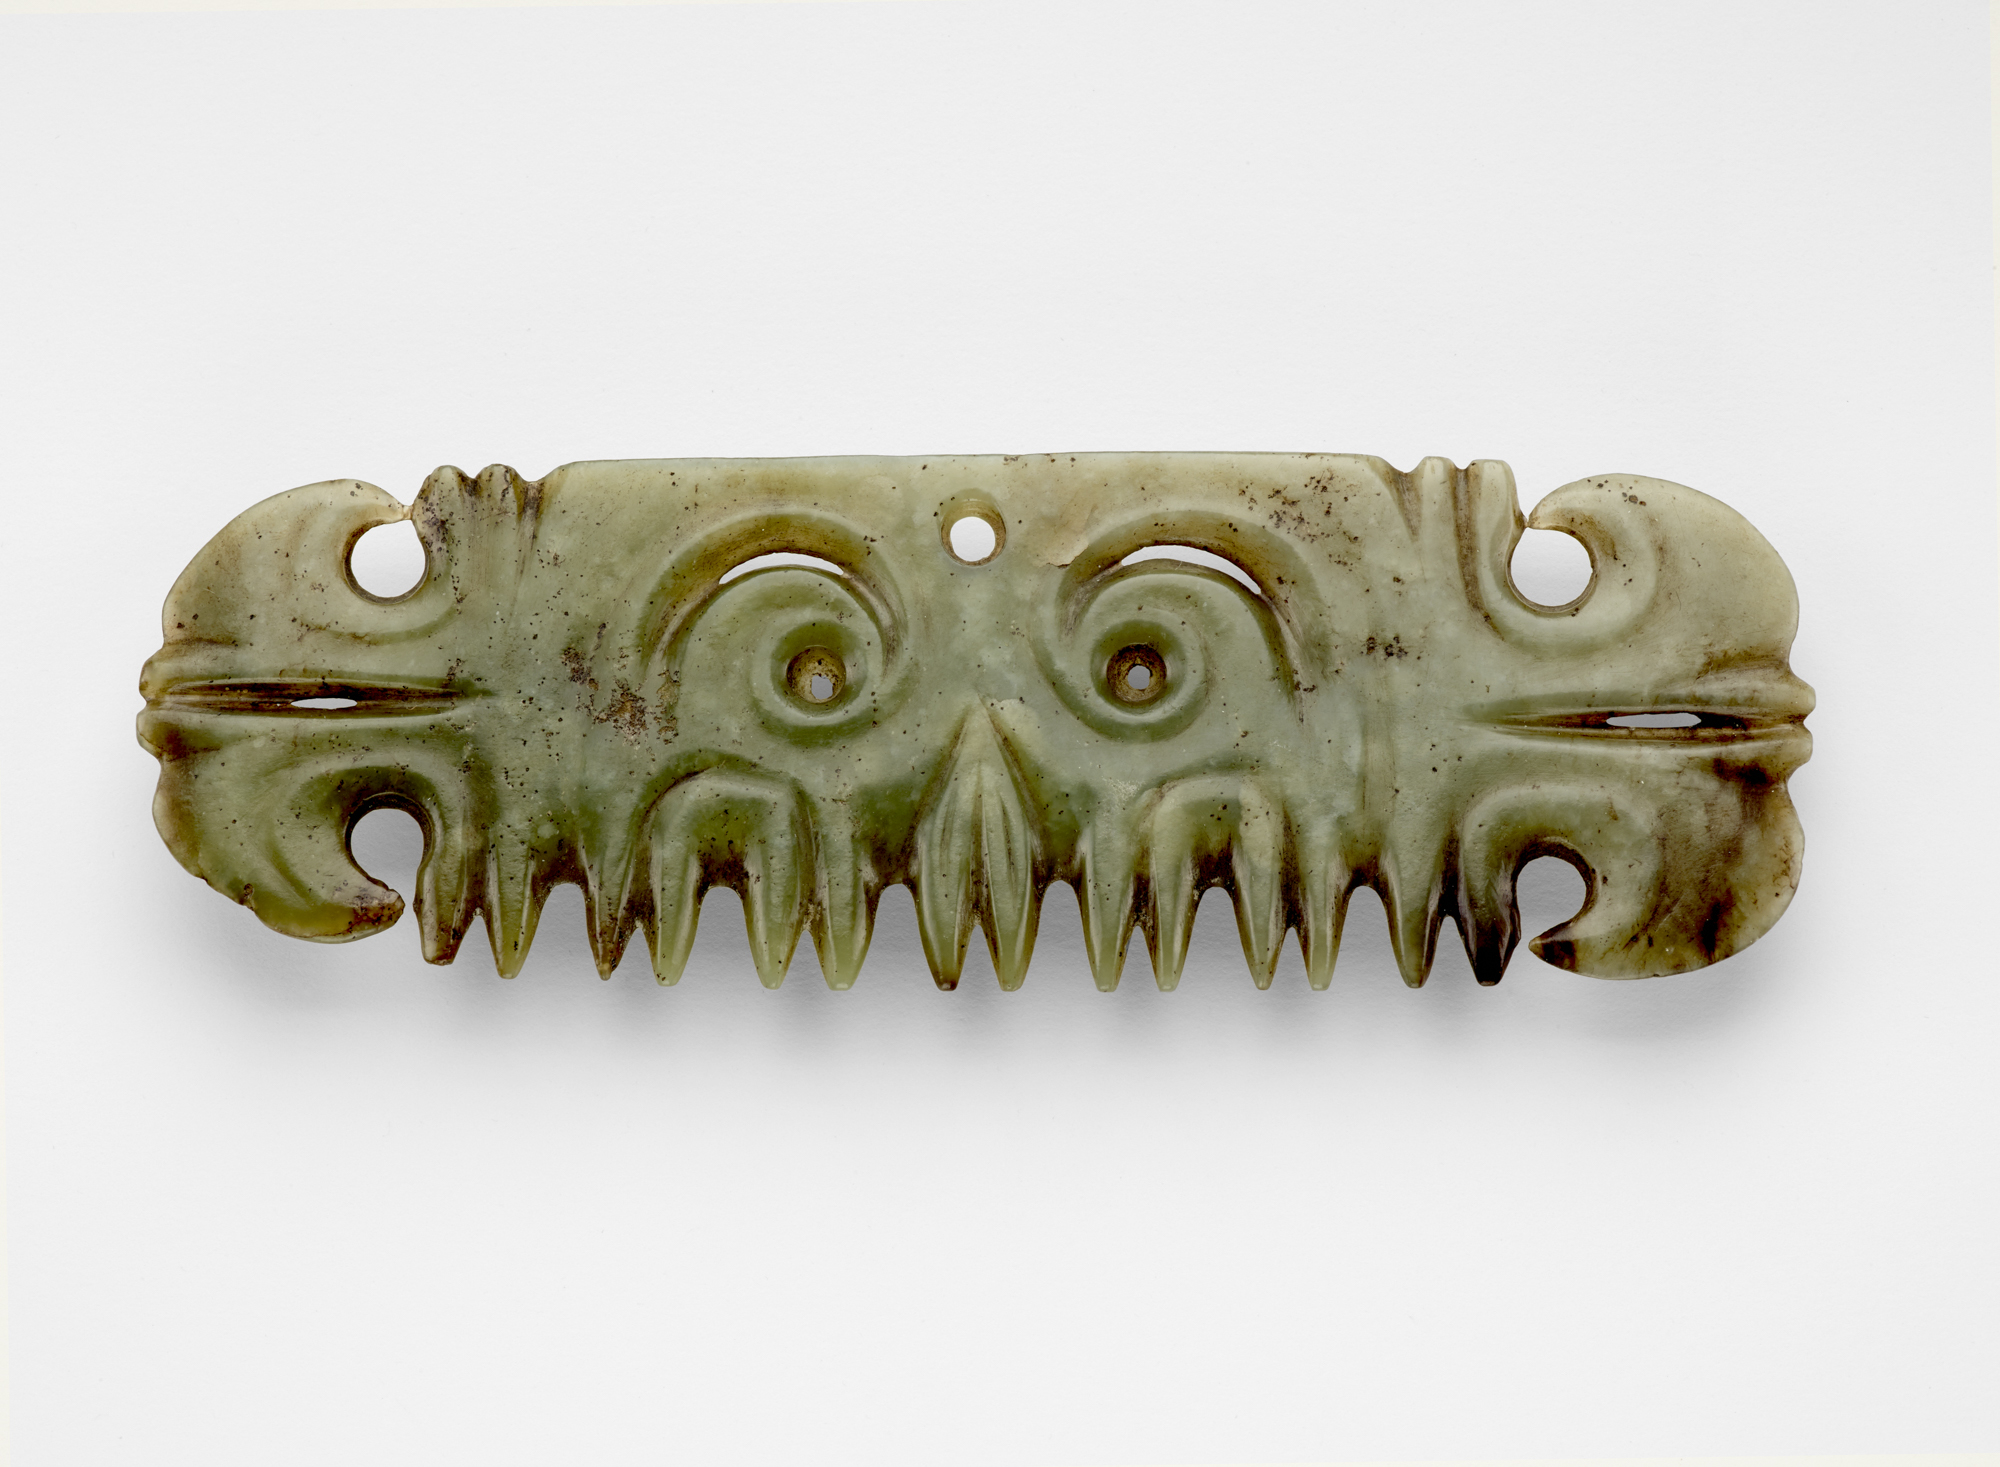 green stone in the shape of a rectangle with a face like carving